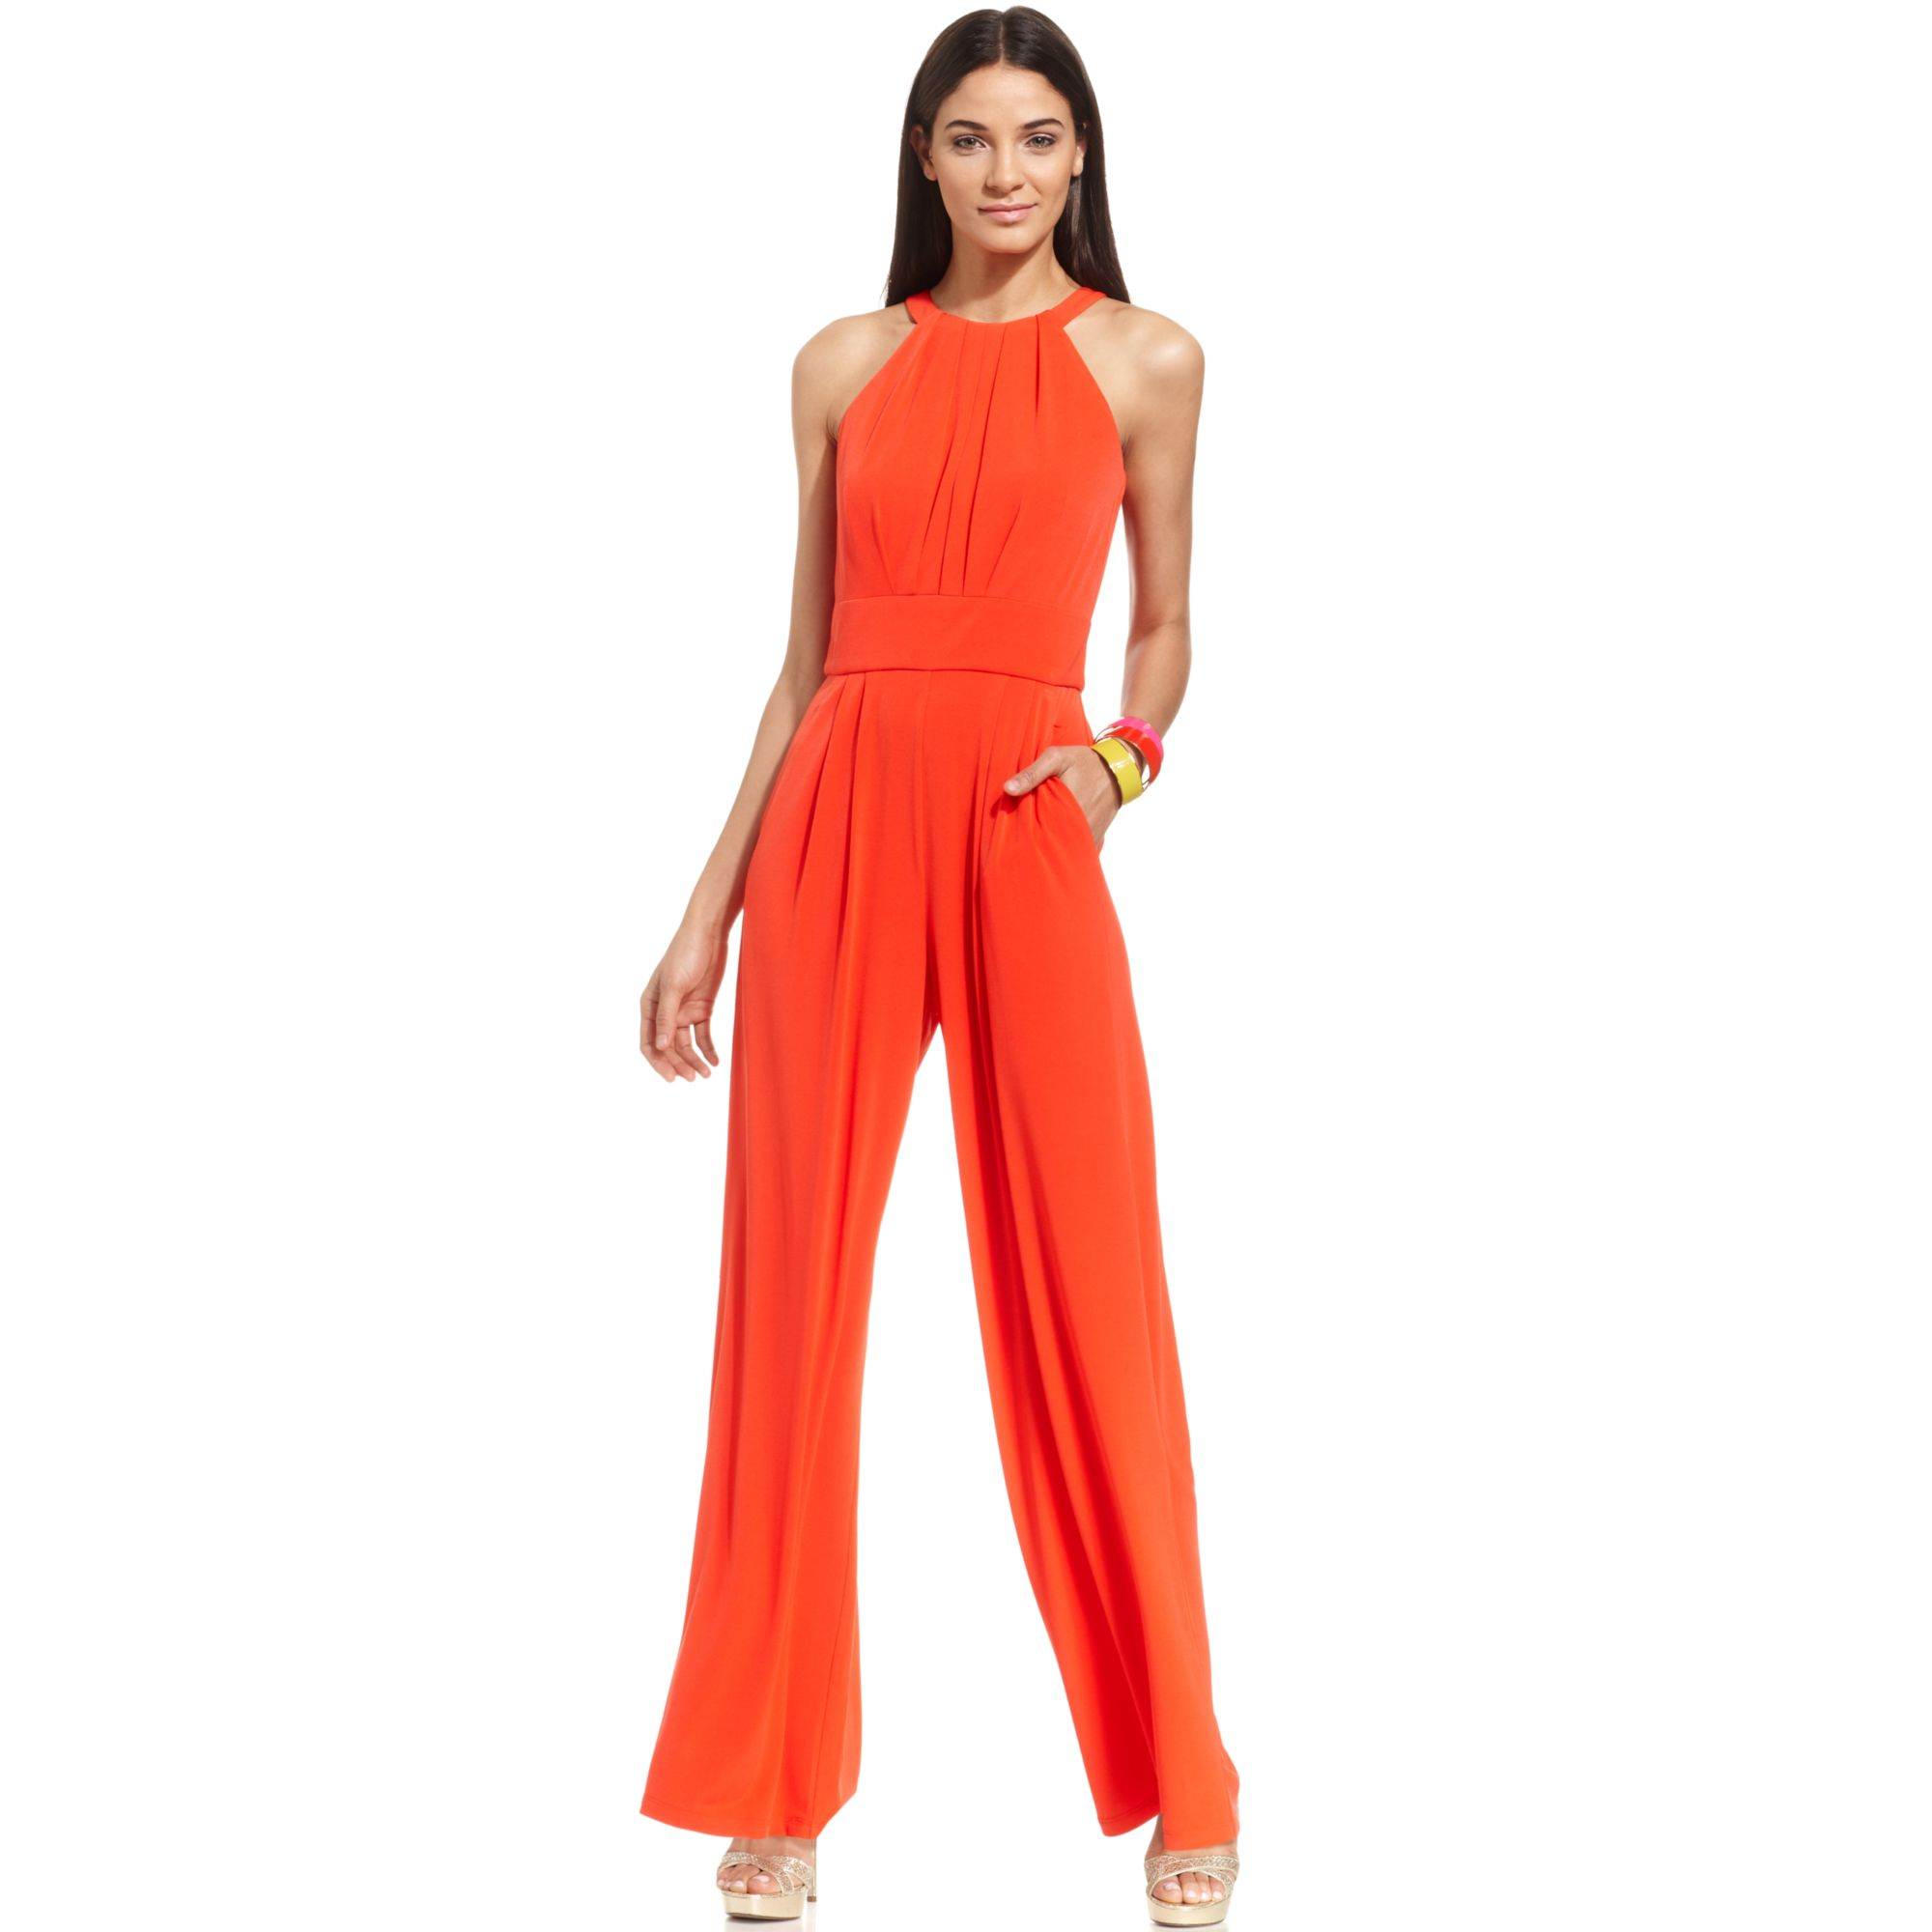 5989cf18e1 Lyst - Vince Camuto Sleeveless Keyhole Wideleg Jumpsuit in Orange